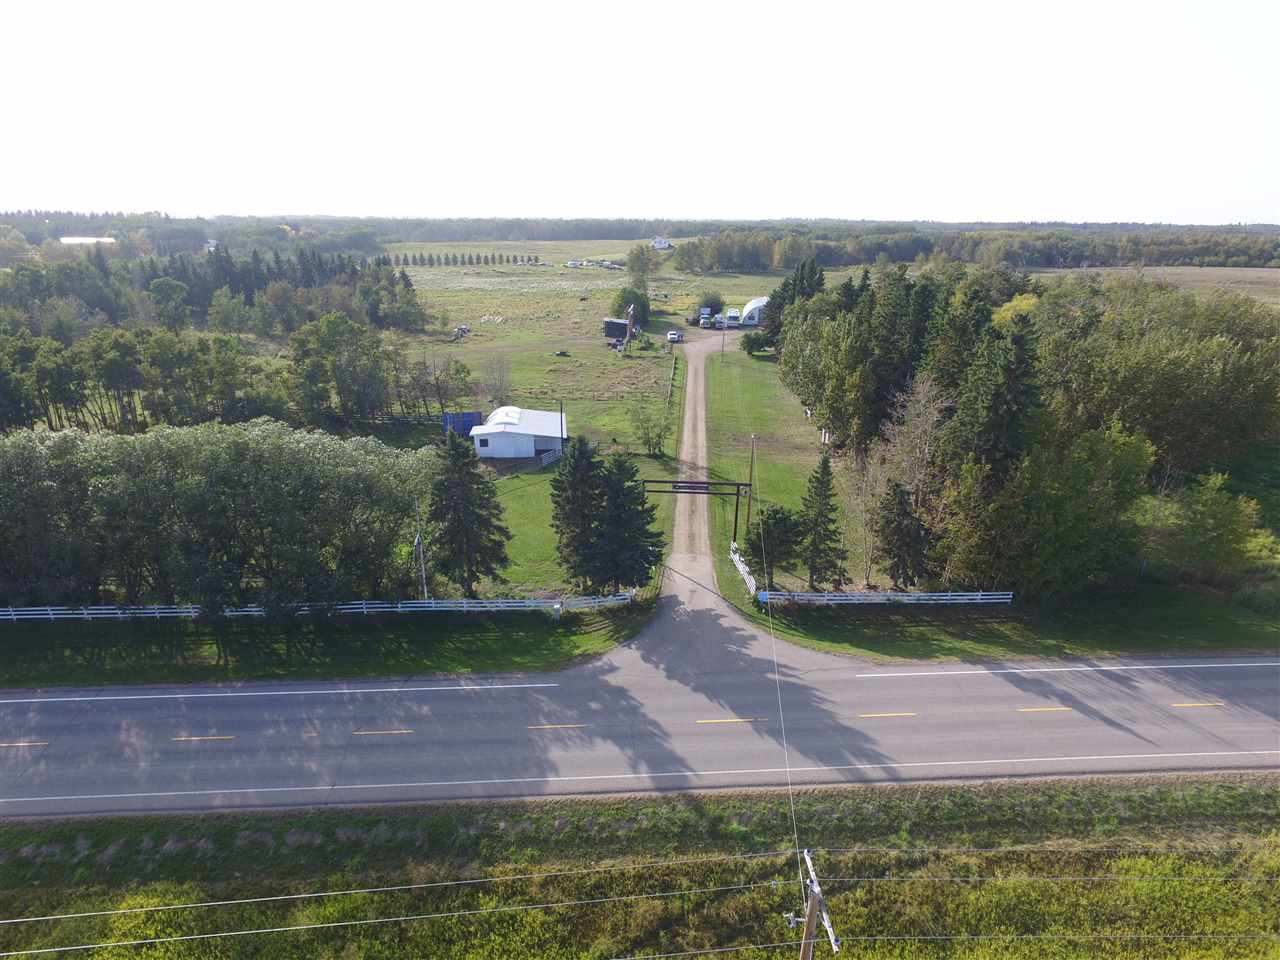 Photo 47: Photos: 472050A Hwy 814: Rural Wetaskiwin County House for sale : MLS®# E4213442